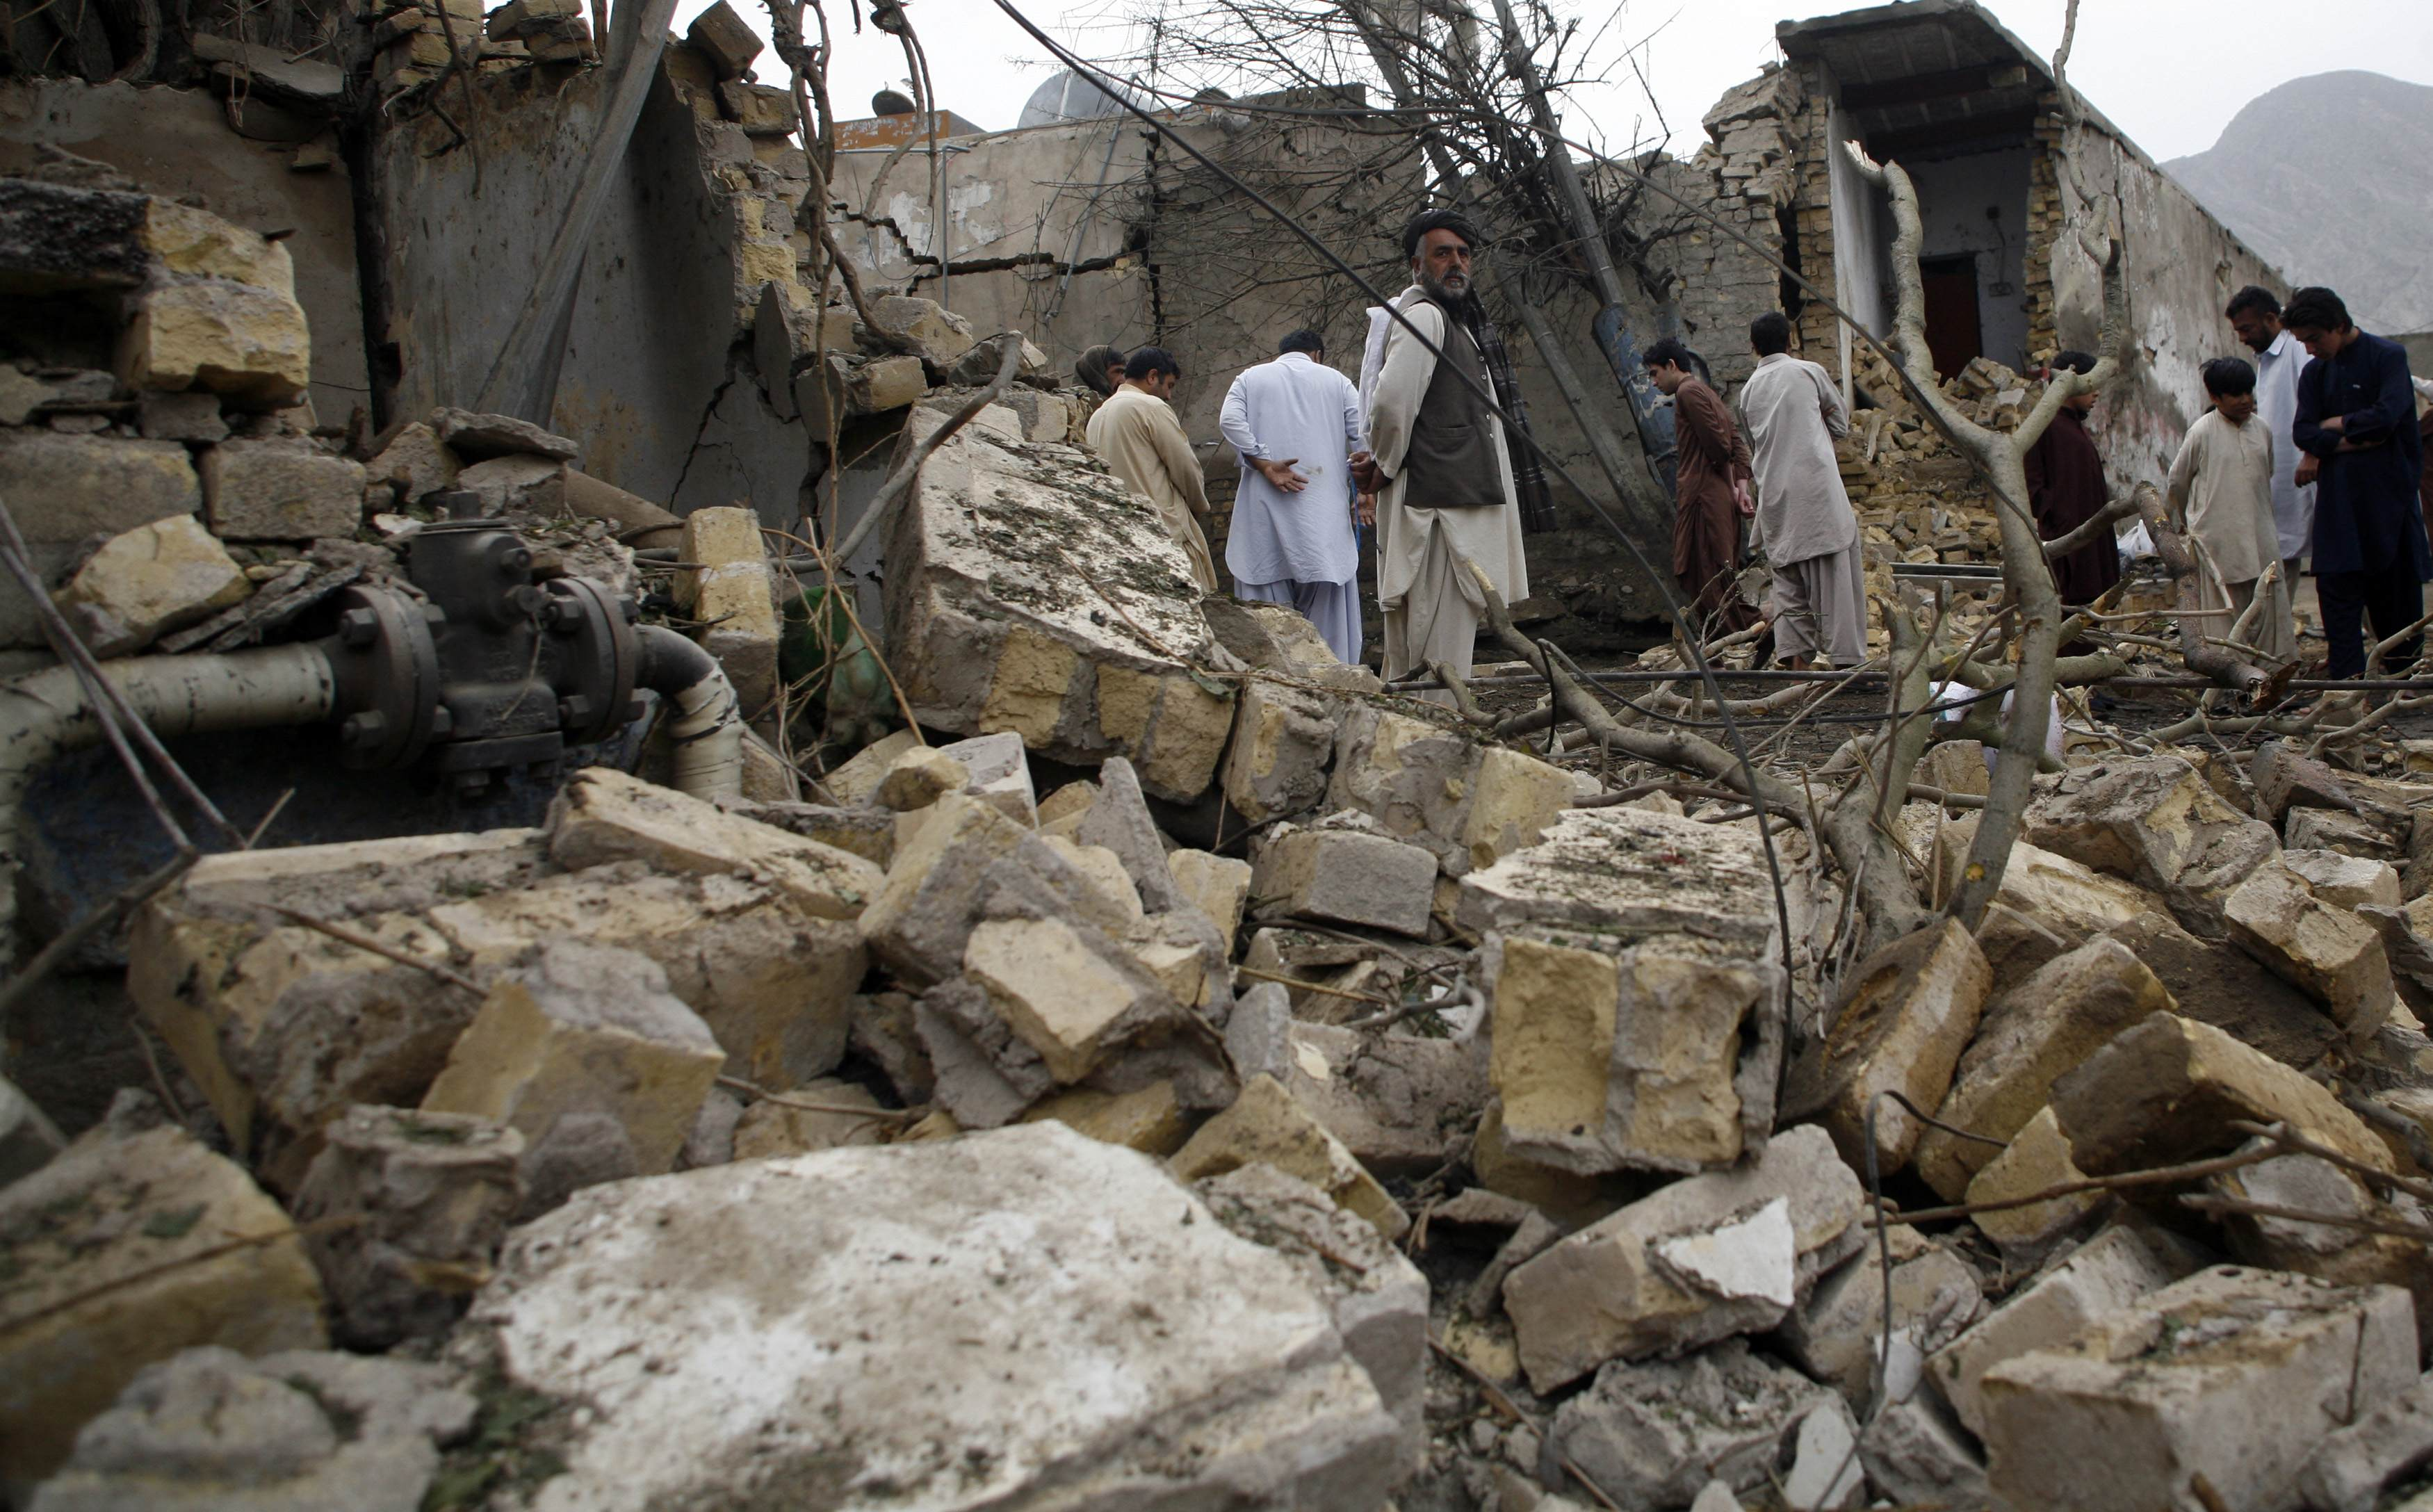 Residents stand among rubble and debris at the site of Tuesday's bomb attack in Quetta April 24, 2013. A prominent leader of Pakistan's ethnic Hazara minority narrowly escaped the suicide attack that killed six people on Tuesday, underscoring the growing threat militants pose to secular politicians in the run-up to next month's general elections. The blast in Quetta was the worst attack since a series of bombings in the city at the start of the year killed almost 200 people, briefly drawing global attention to a gr